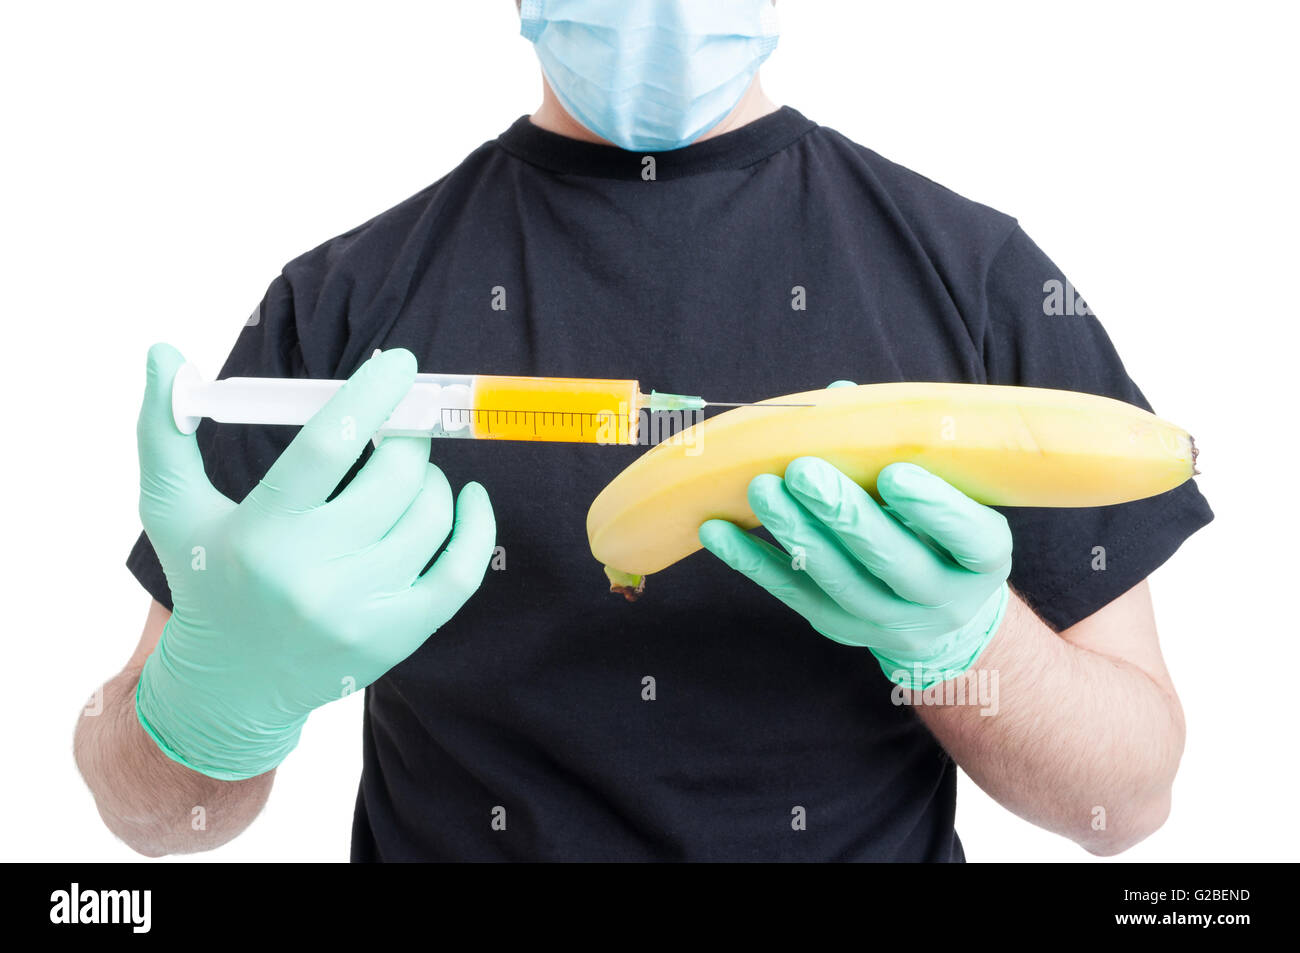 Genetically modified banana or fruit and syringe in male hands wearing blue gloves as artificial food concept isolated - Stock Image